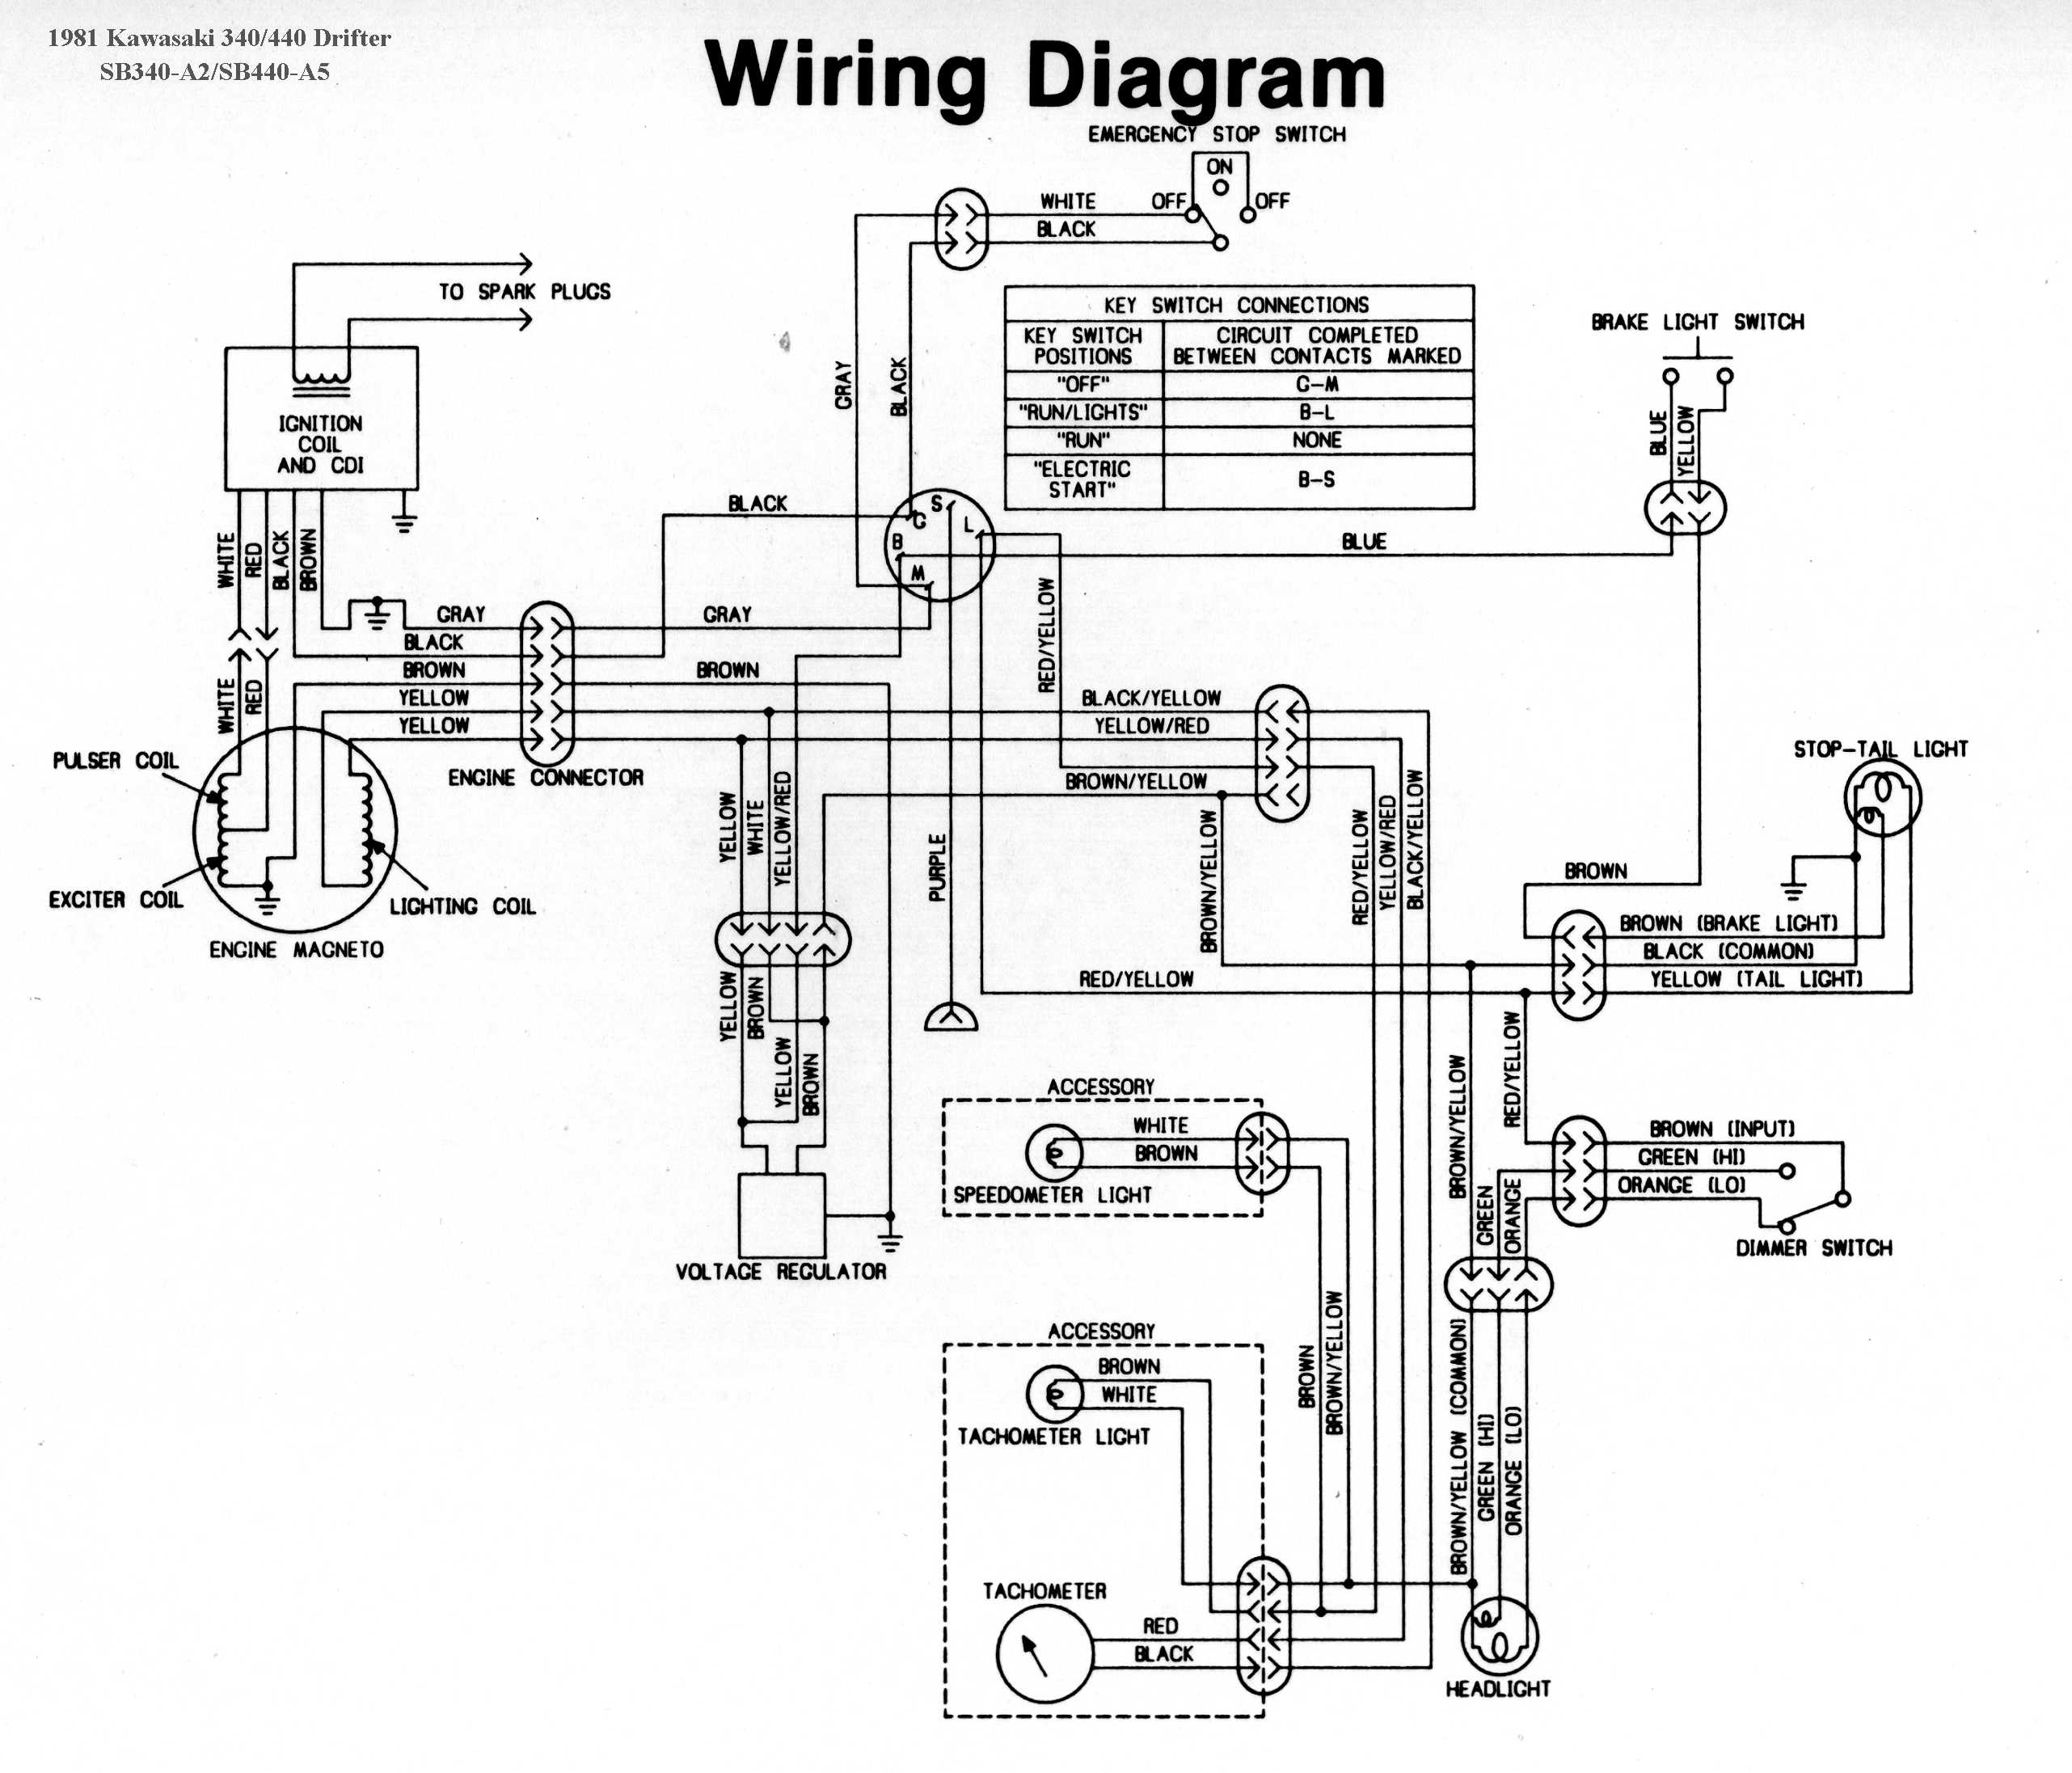 1981 Kawasaki 440 Intruder Wiring Diagram 41 Images 1982 Kz1300 Diagrams Sb340a2 Mule Kaf620 Free 1980 Invader At Cita